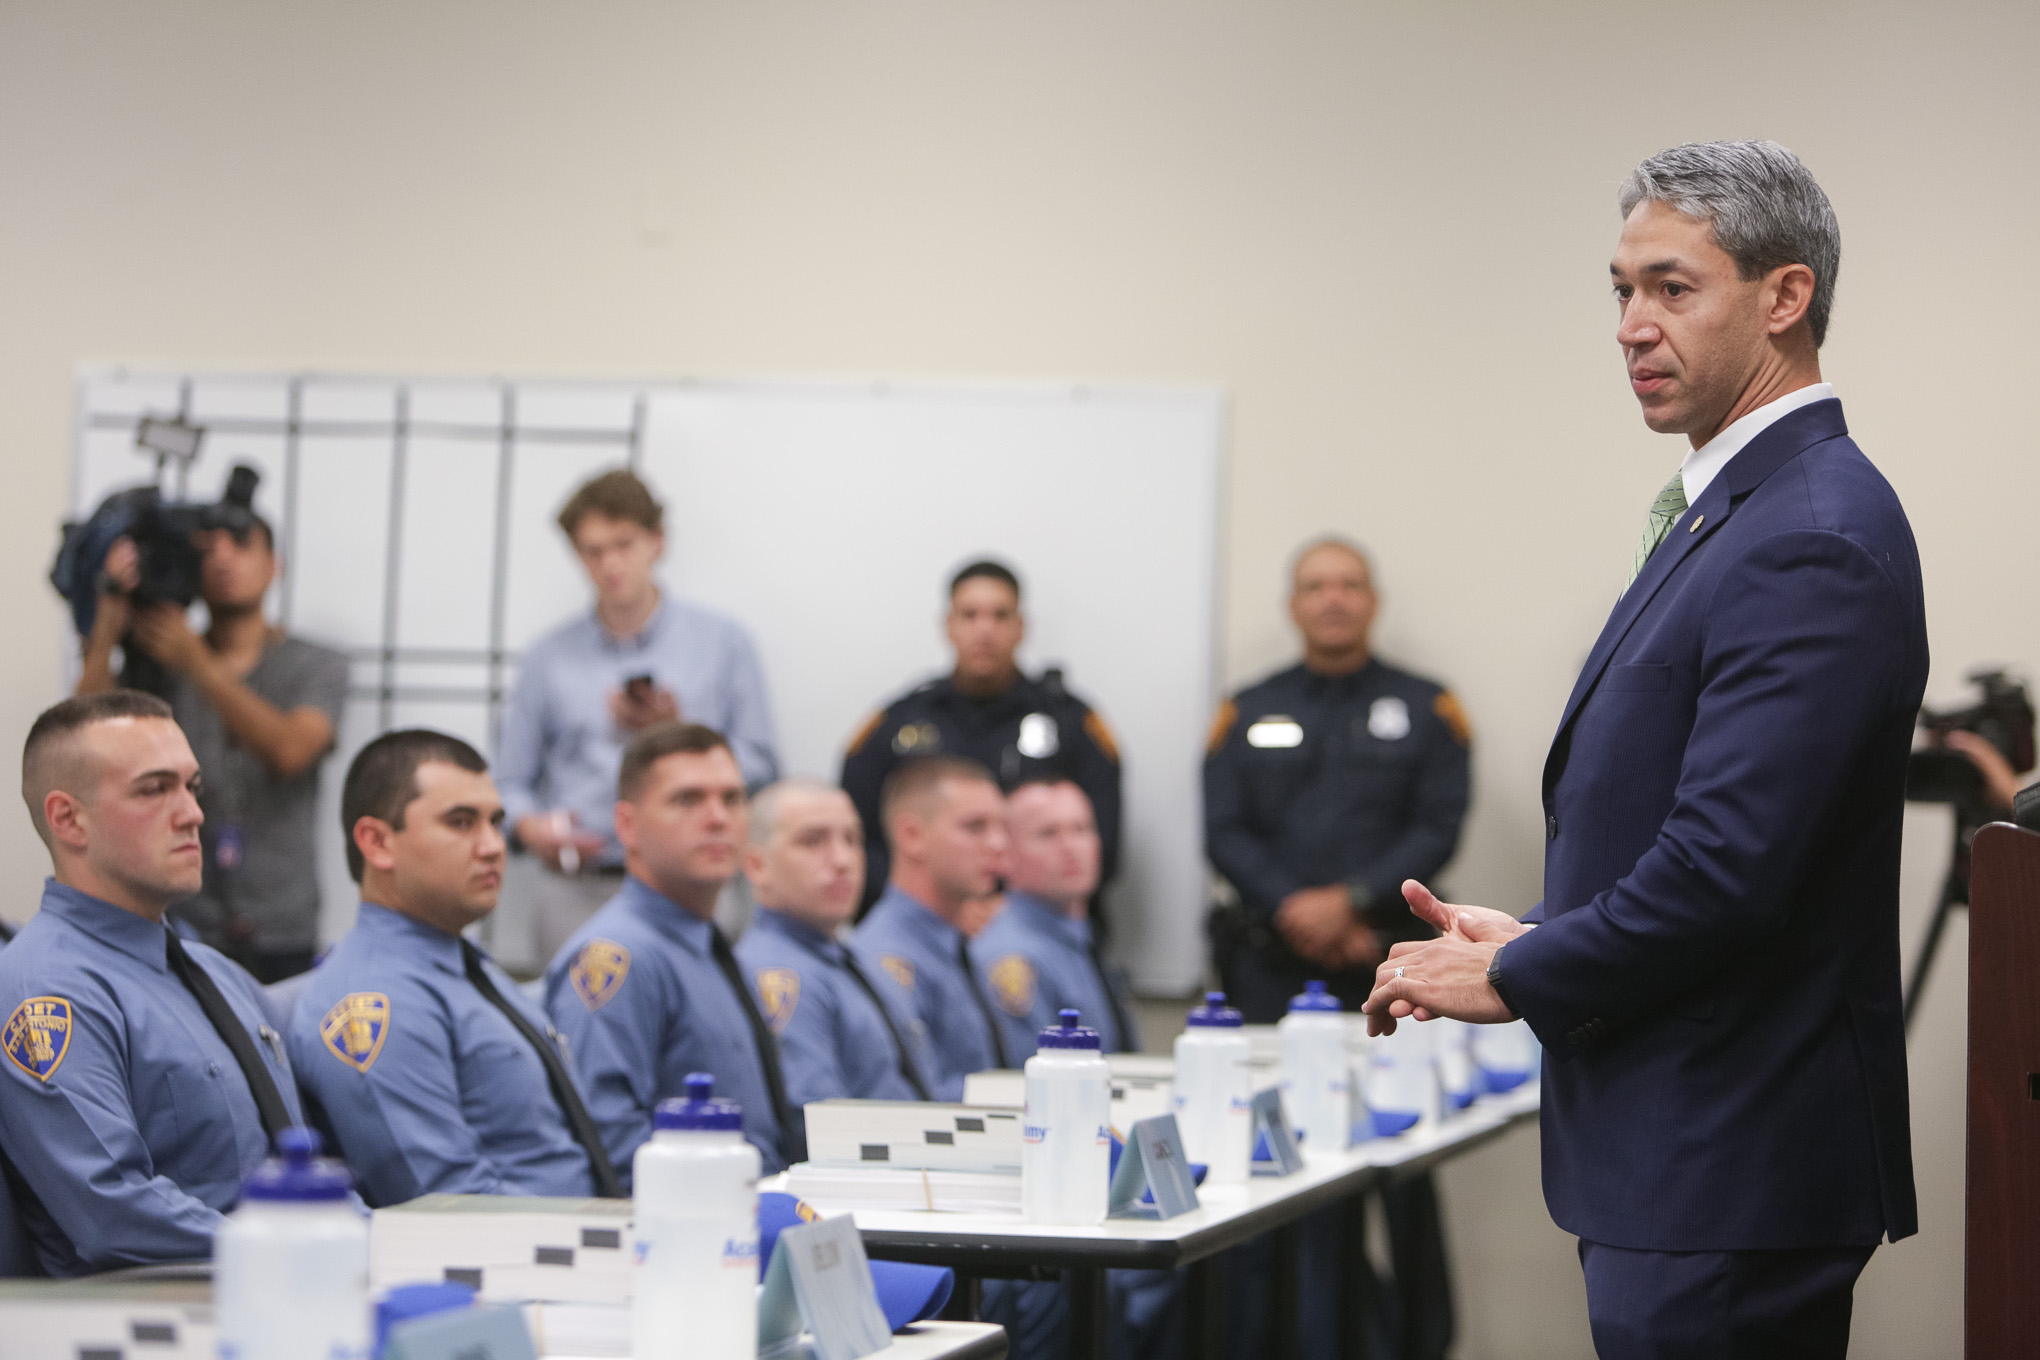 Mayor Ron Nirenberg addresses the newest San Antonio Police Department cadets on their first day of training.